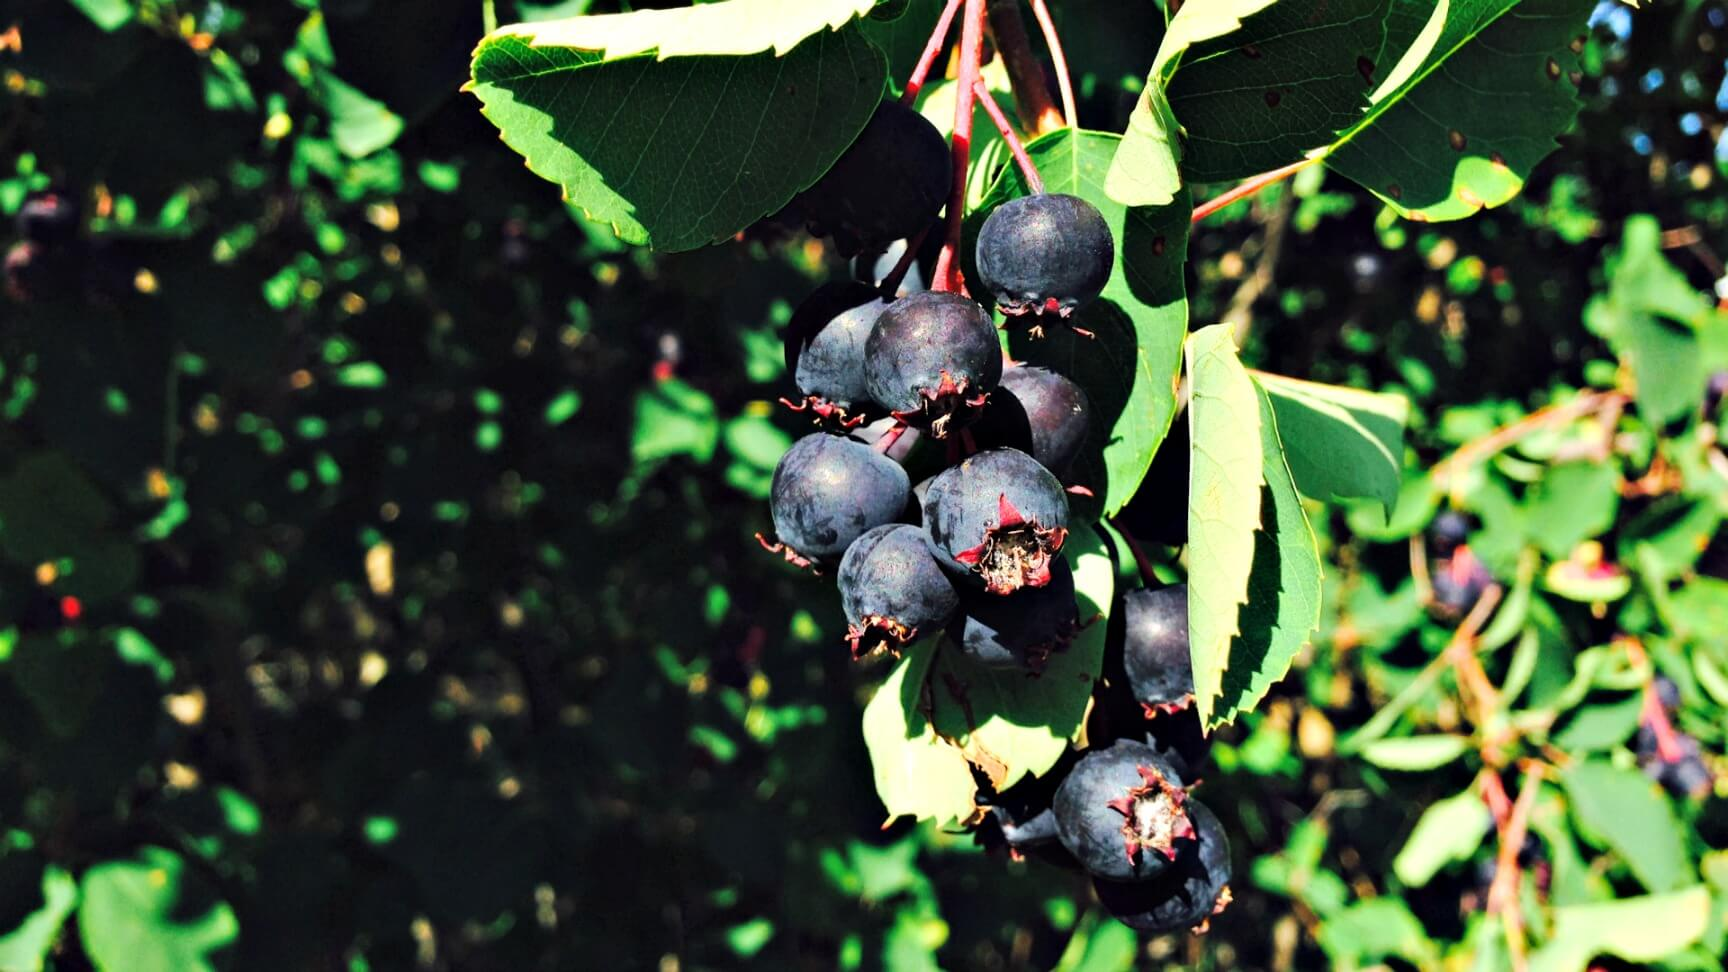 Albeerta Tourist Attractions Saskatoon Berry U-pick